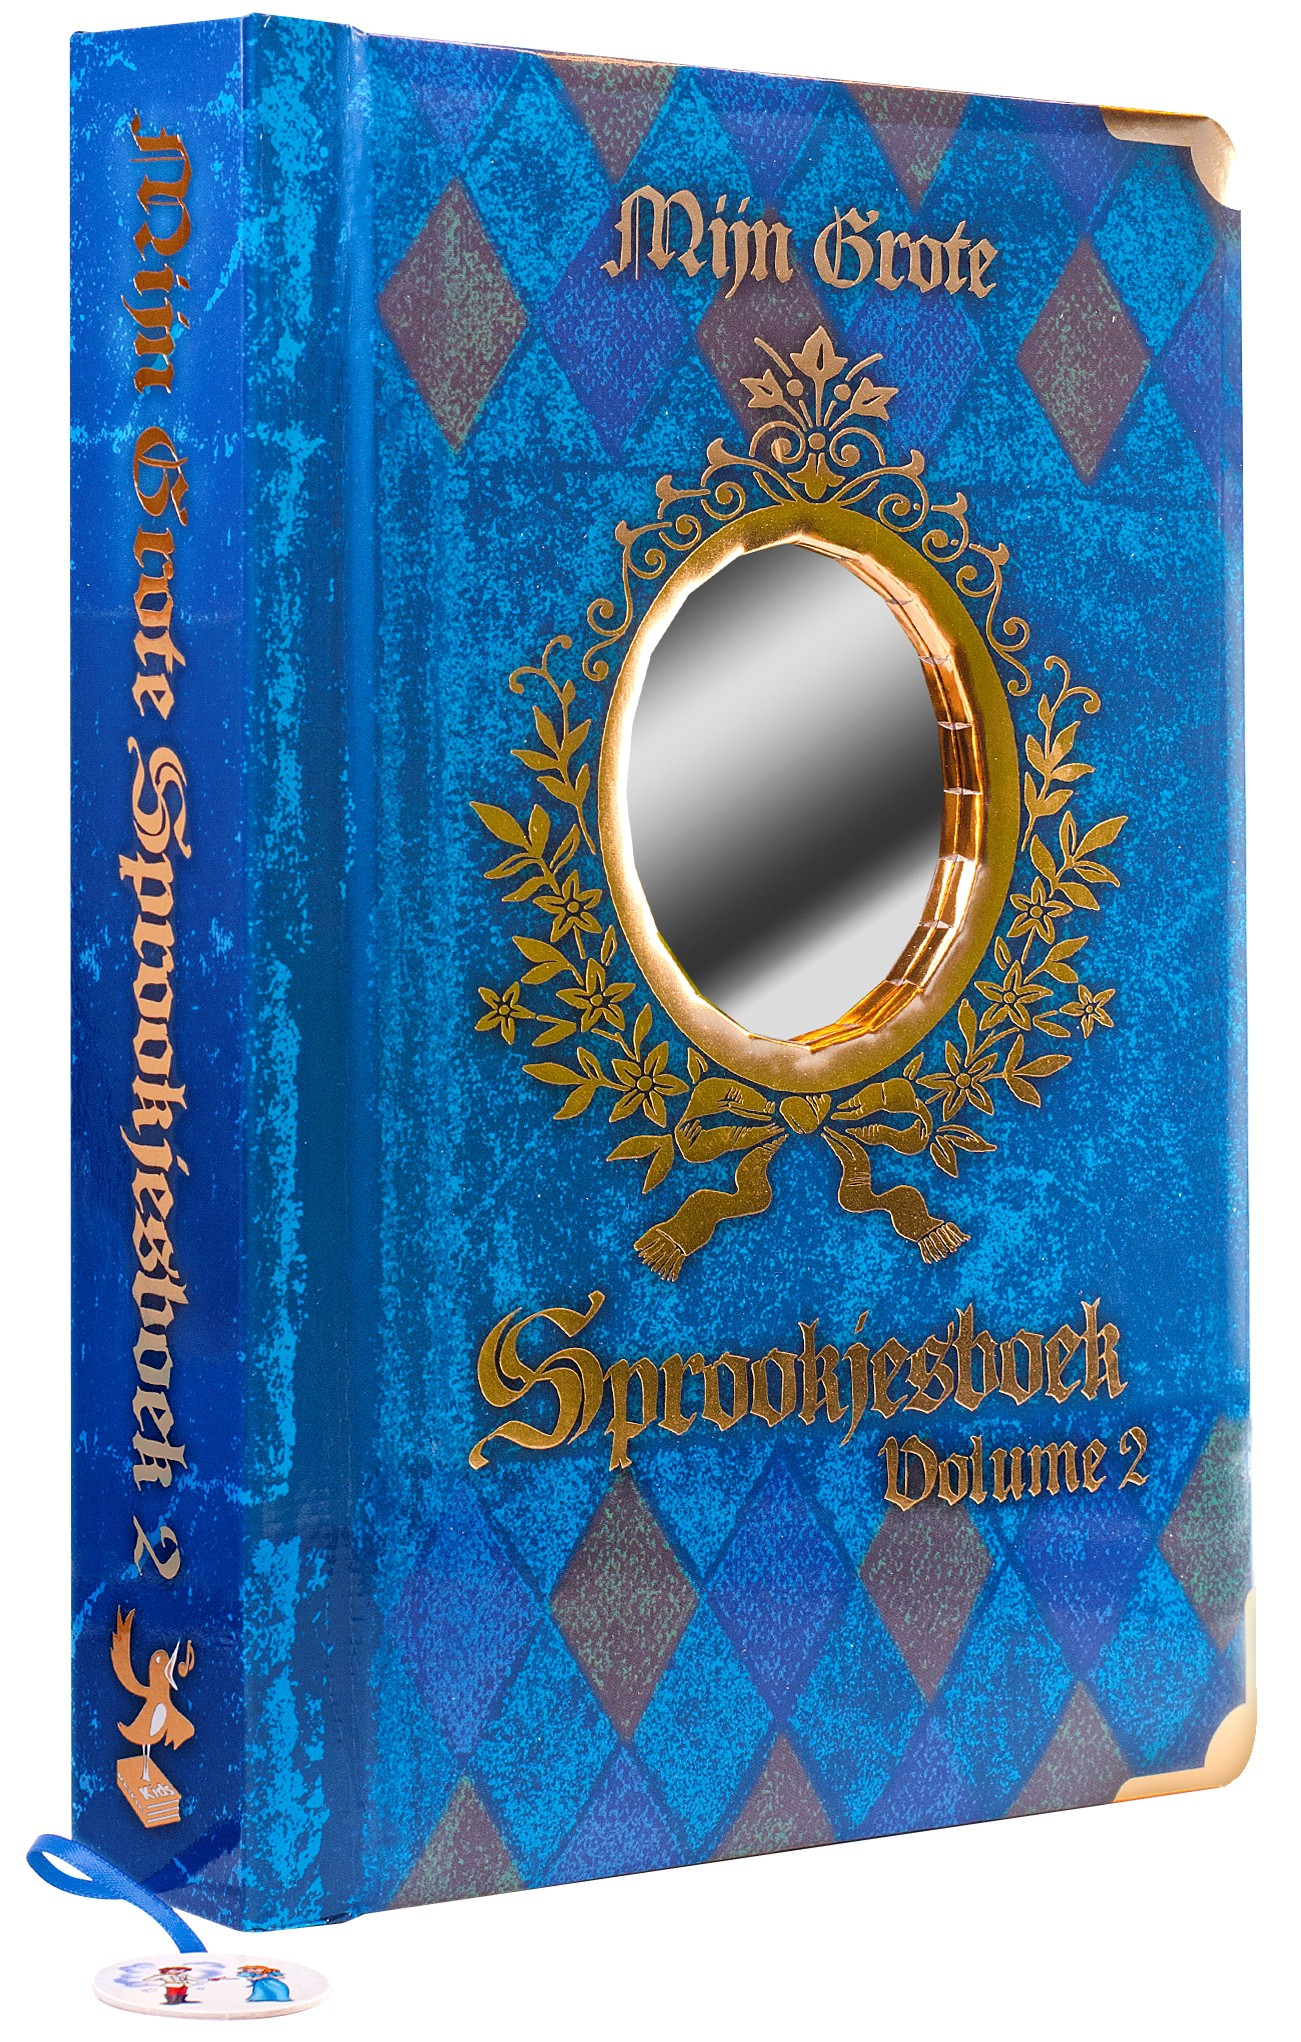 Sprookjesboek vol 2